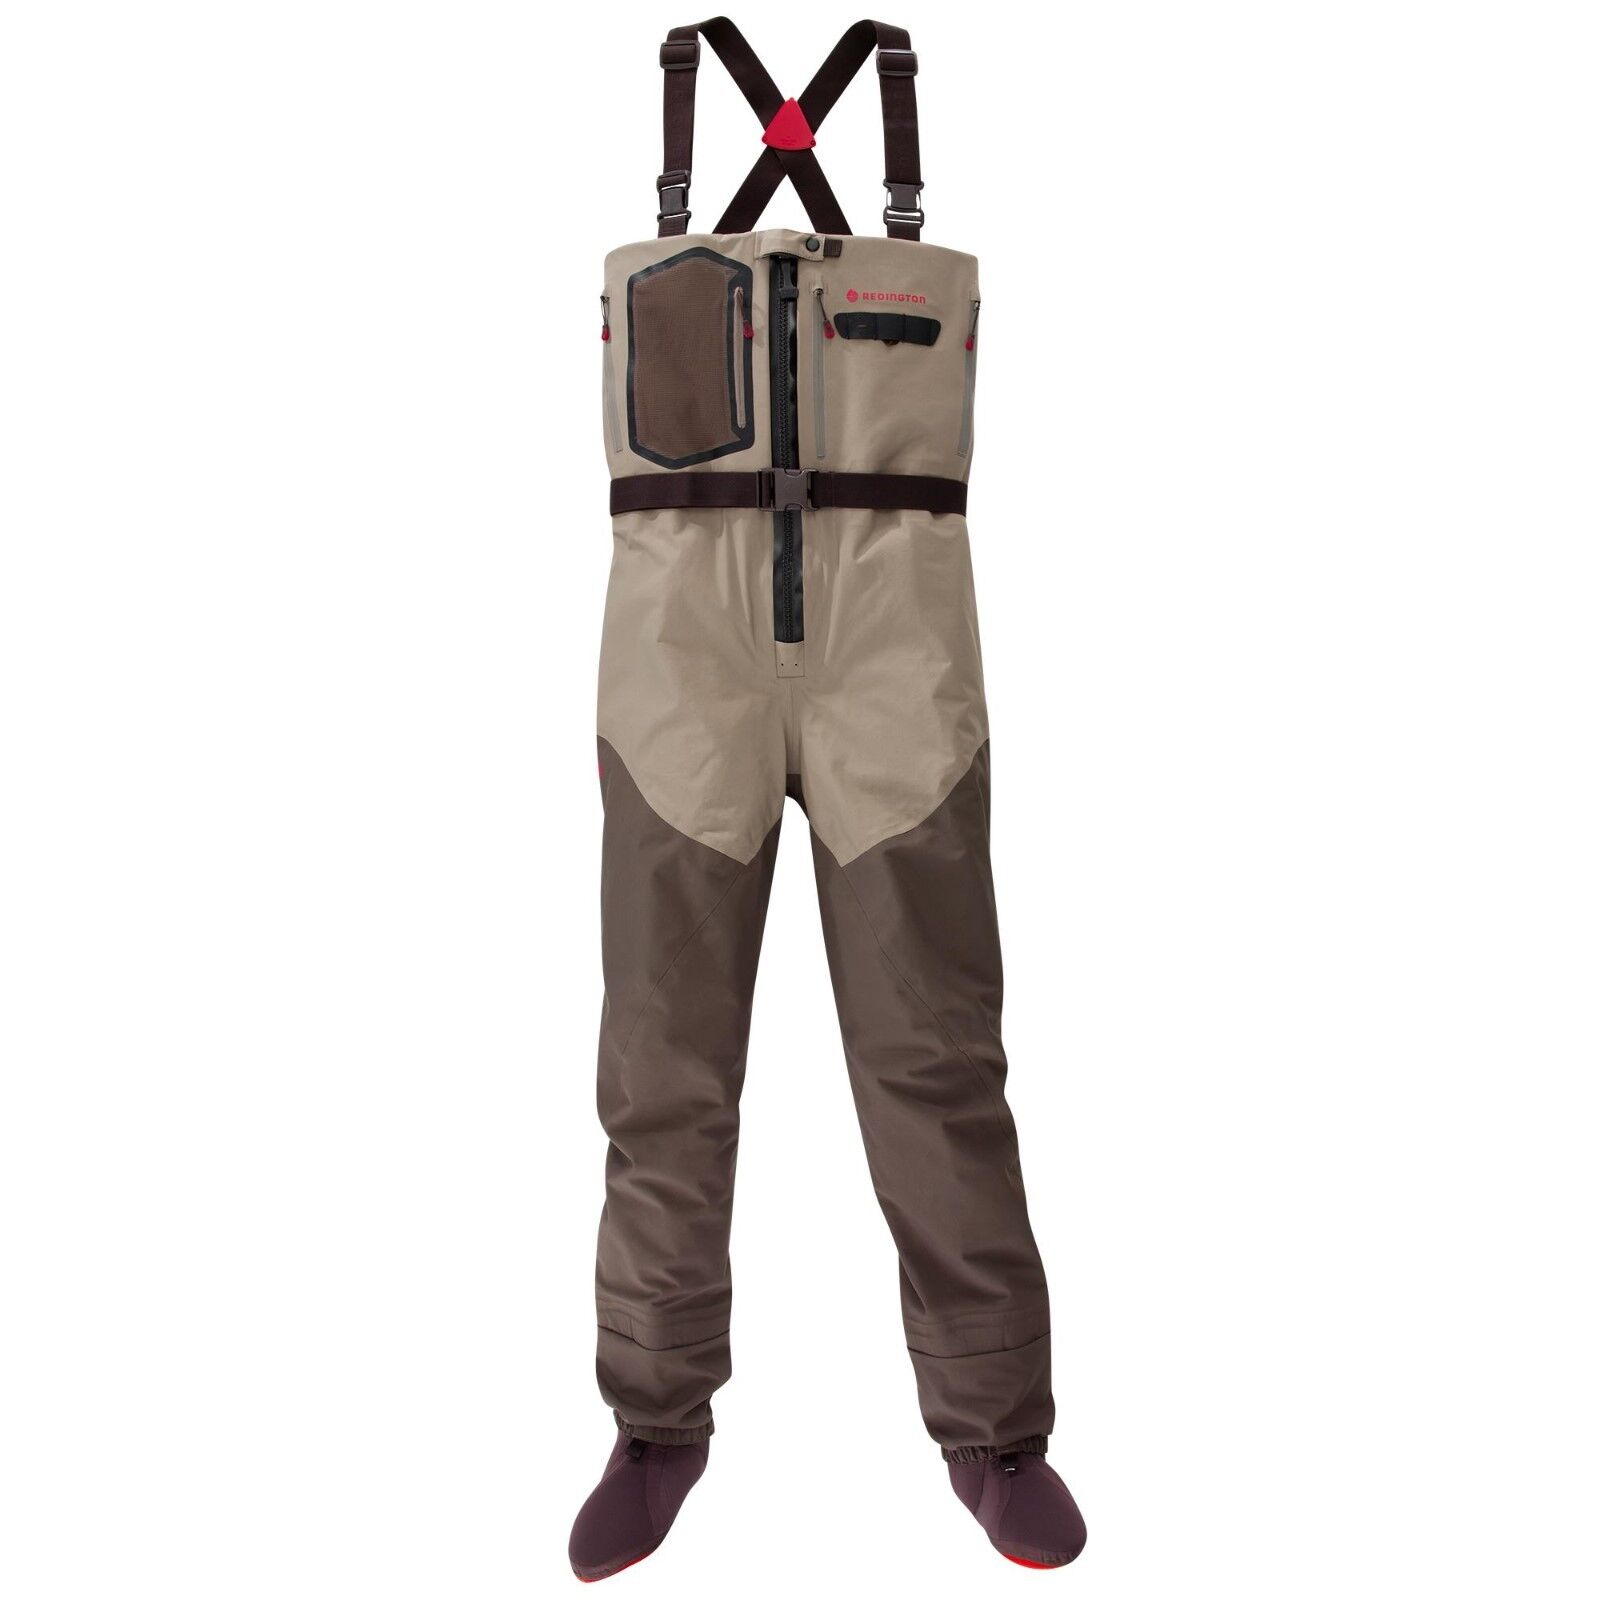 SIZE LARGE KING ROTINGTON SONIC-PRO HDZ ZIP FRONT FLY FISHING CHEST WADERS